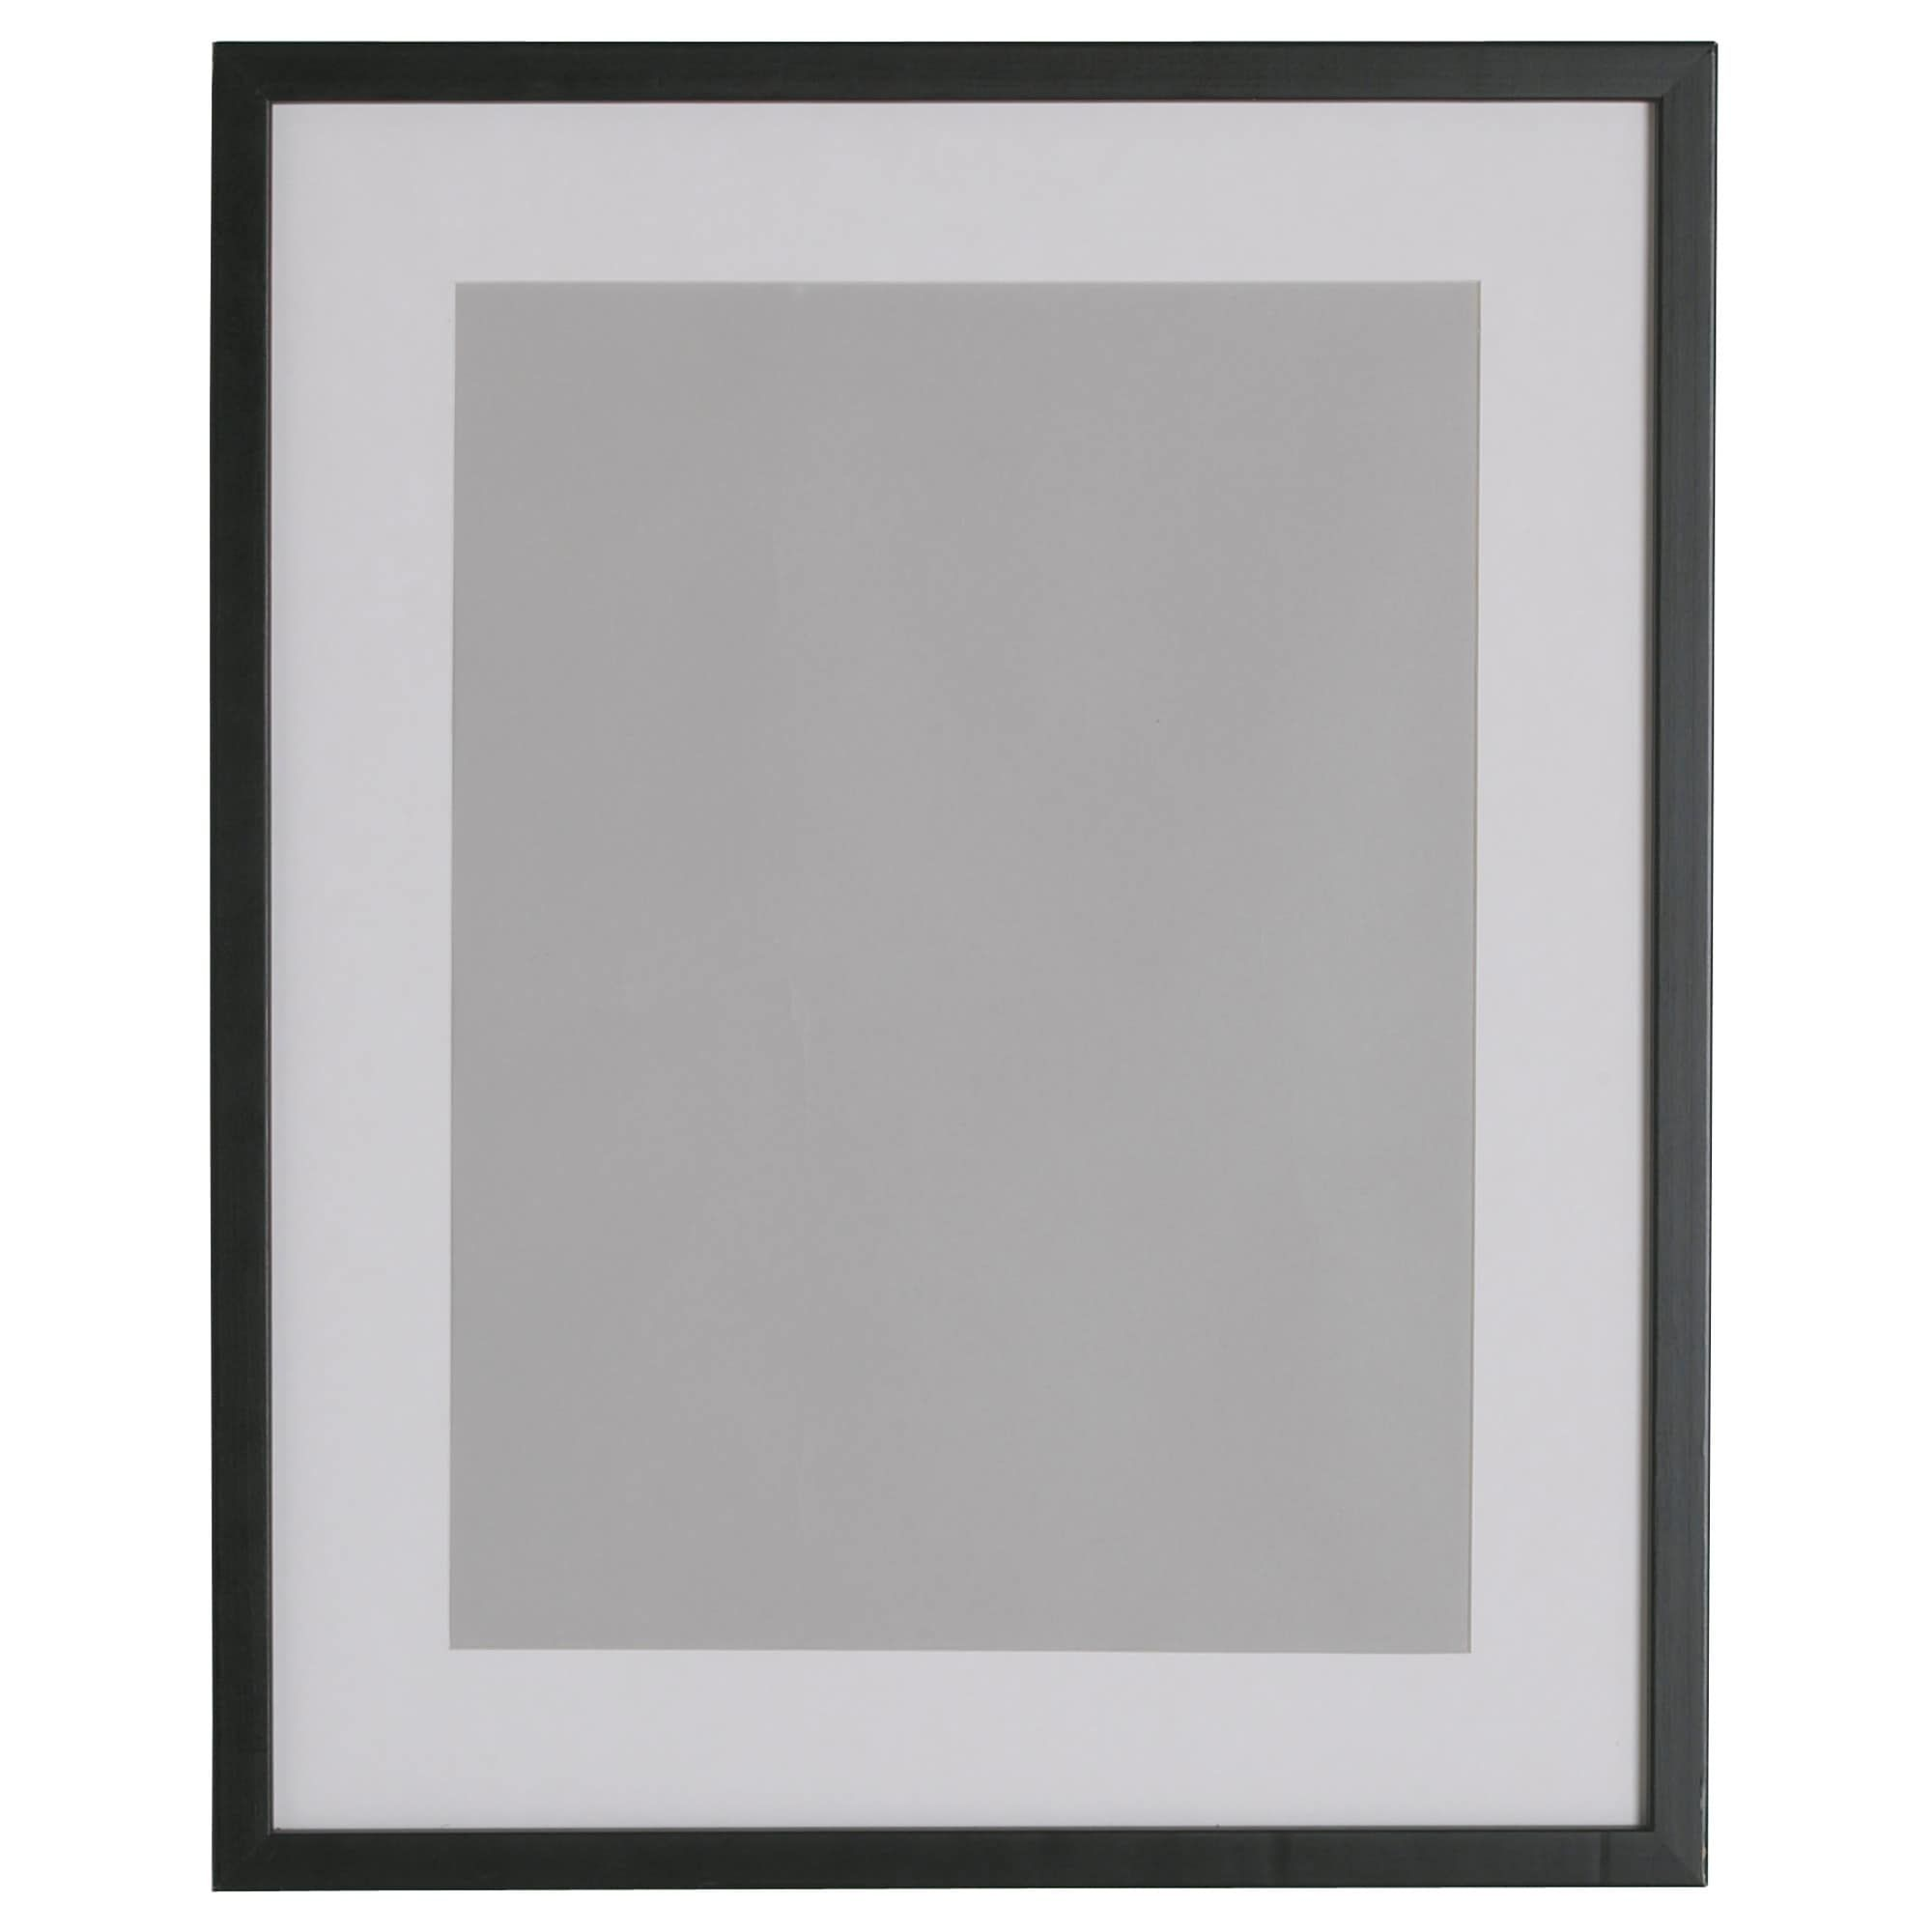 Ribba Frame Black 12x16 Ikea In 2020 Ribba Frame Wooden Picture Frames Ikea